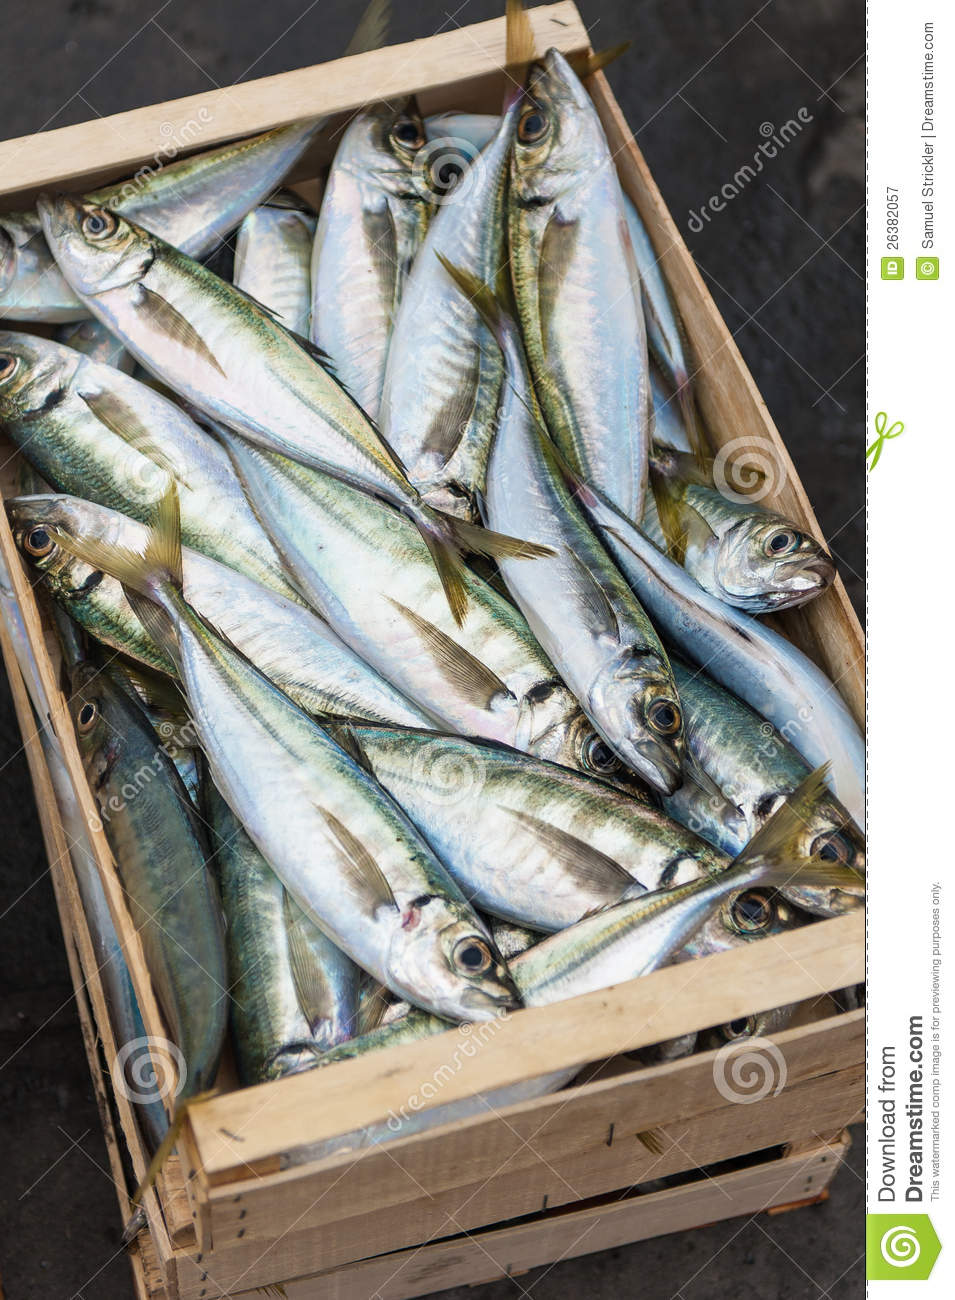 Crate of fresh fish stock image. Image of home, camogli - 26382057